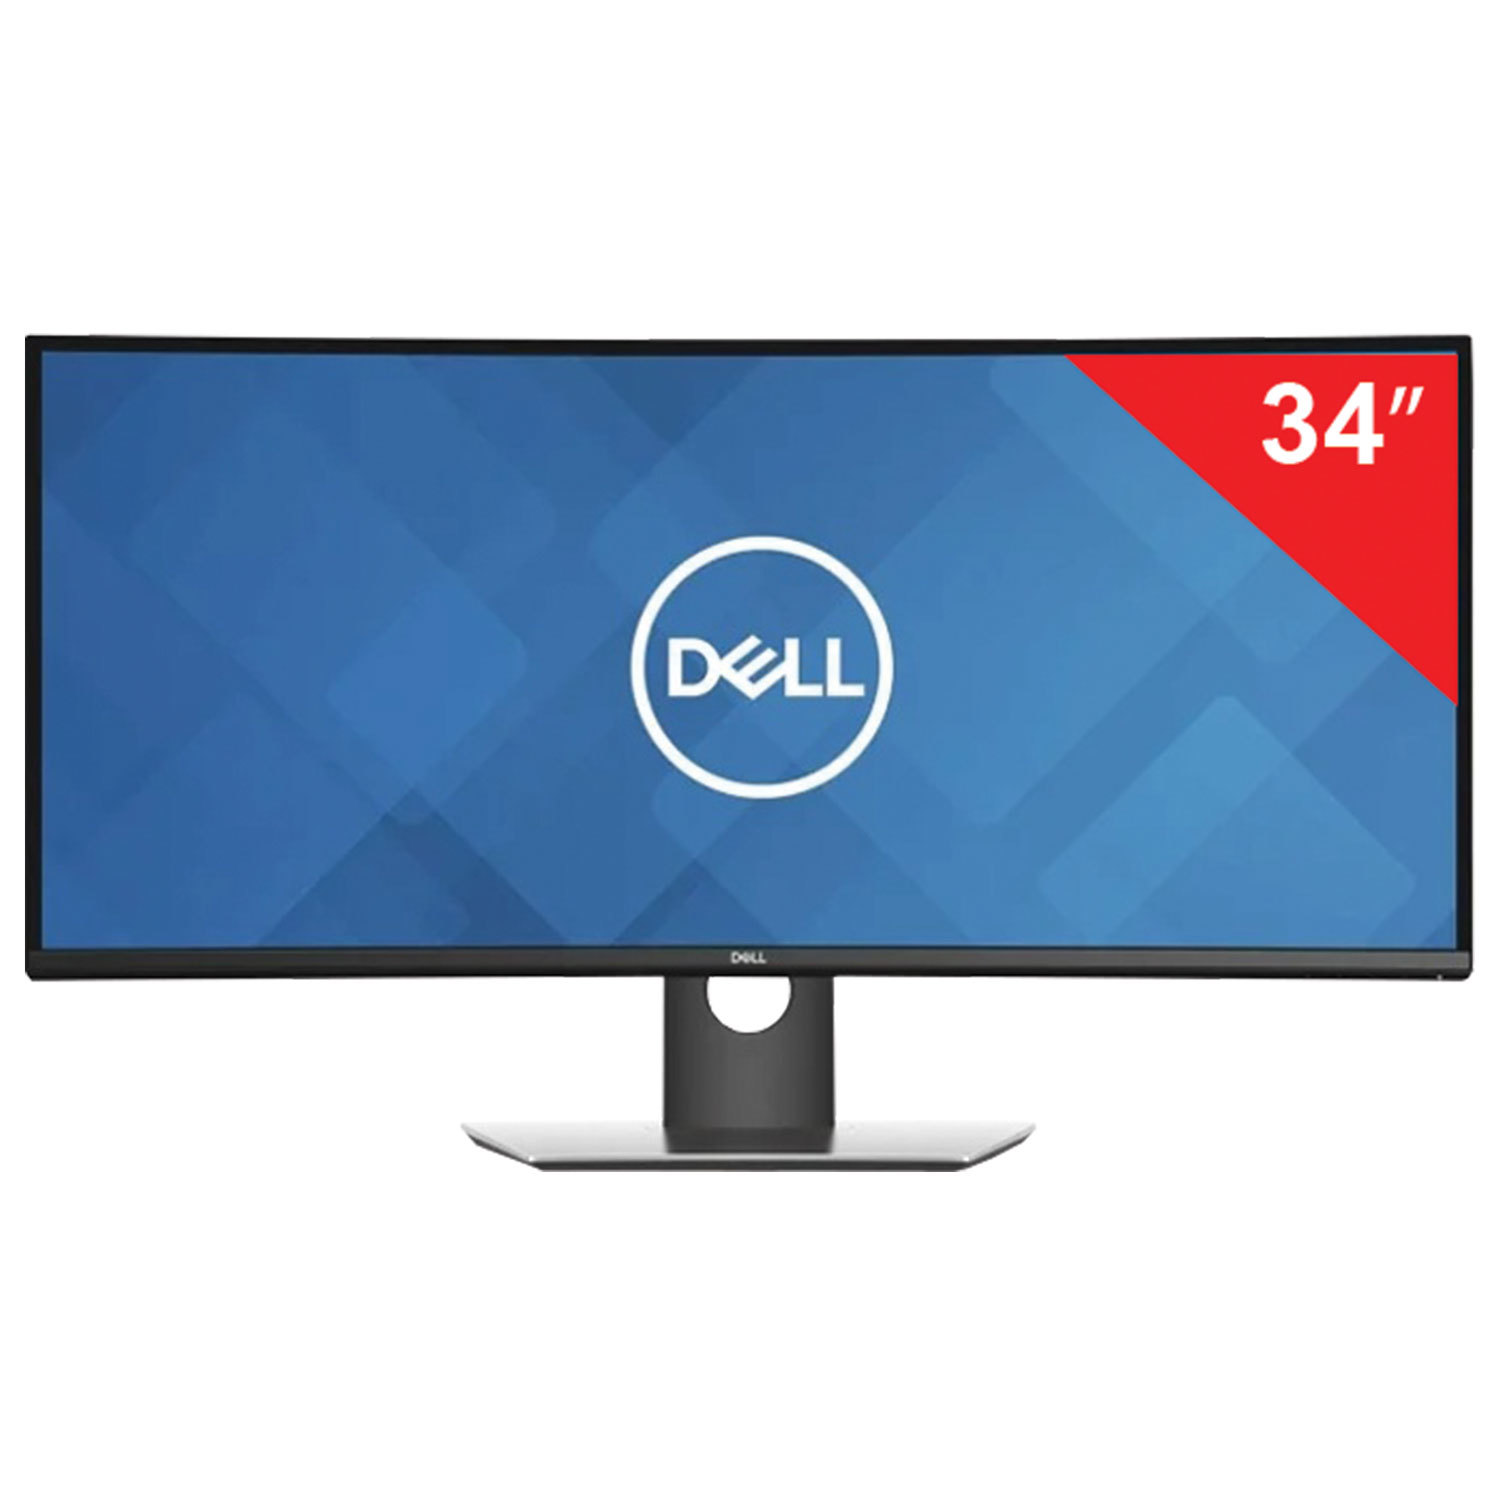 "Монитор DELL U3419W 34"" (86 см), 3440x1440, 21:9, IPS, 5 ms, 300 cd, HDMI, DP, USB, HAS Pivot, черный"